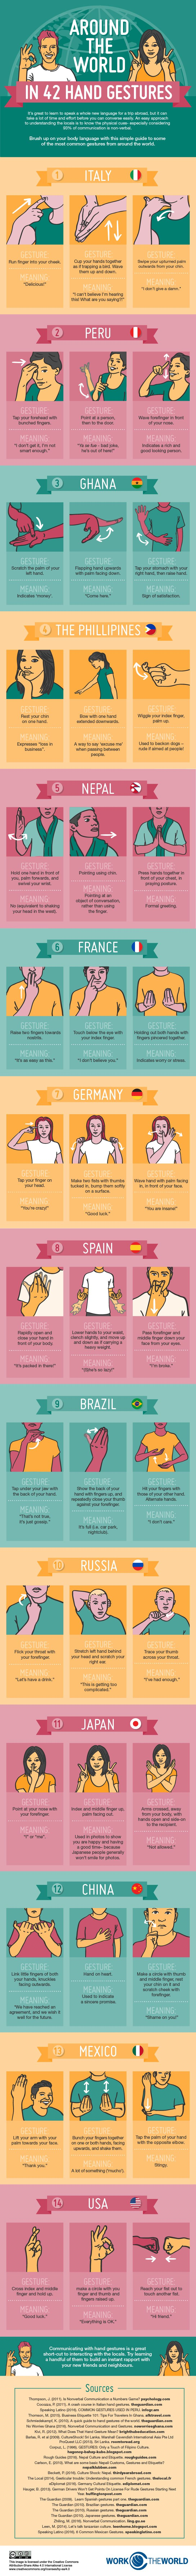 Around the World in 42 Hand Gestures #Infographic